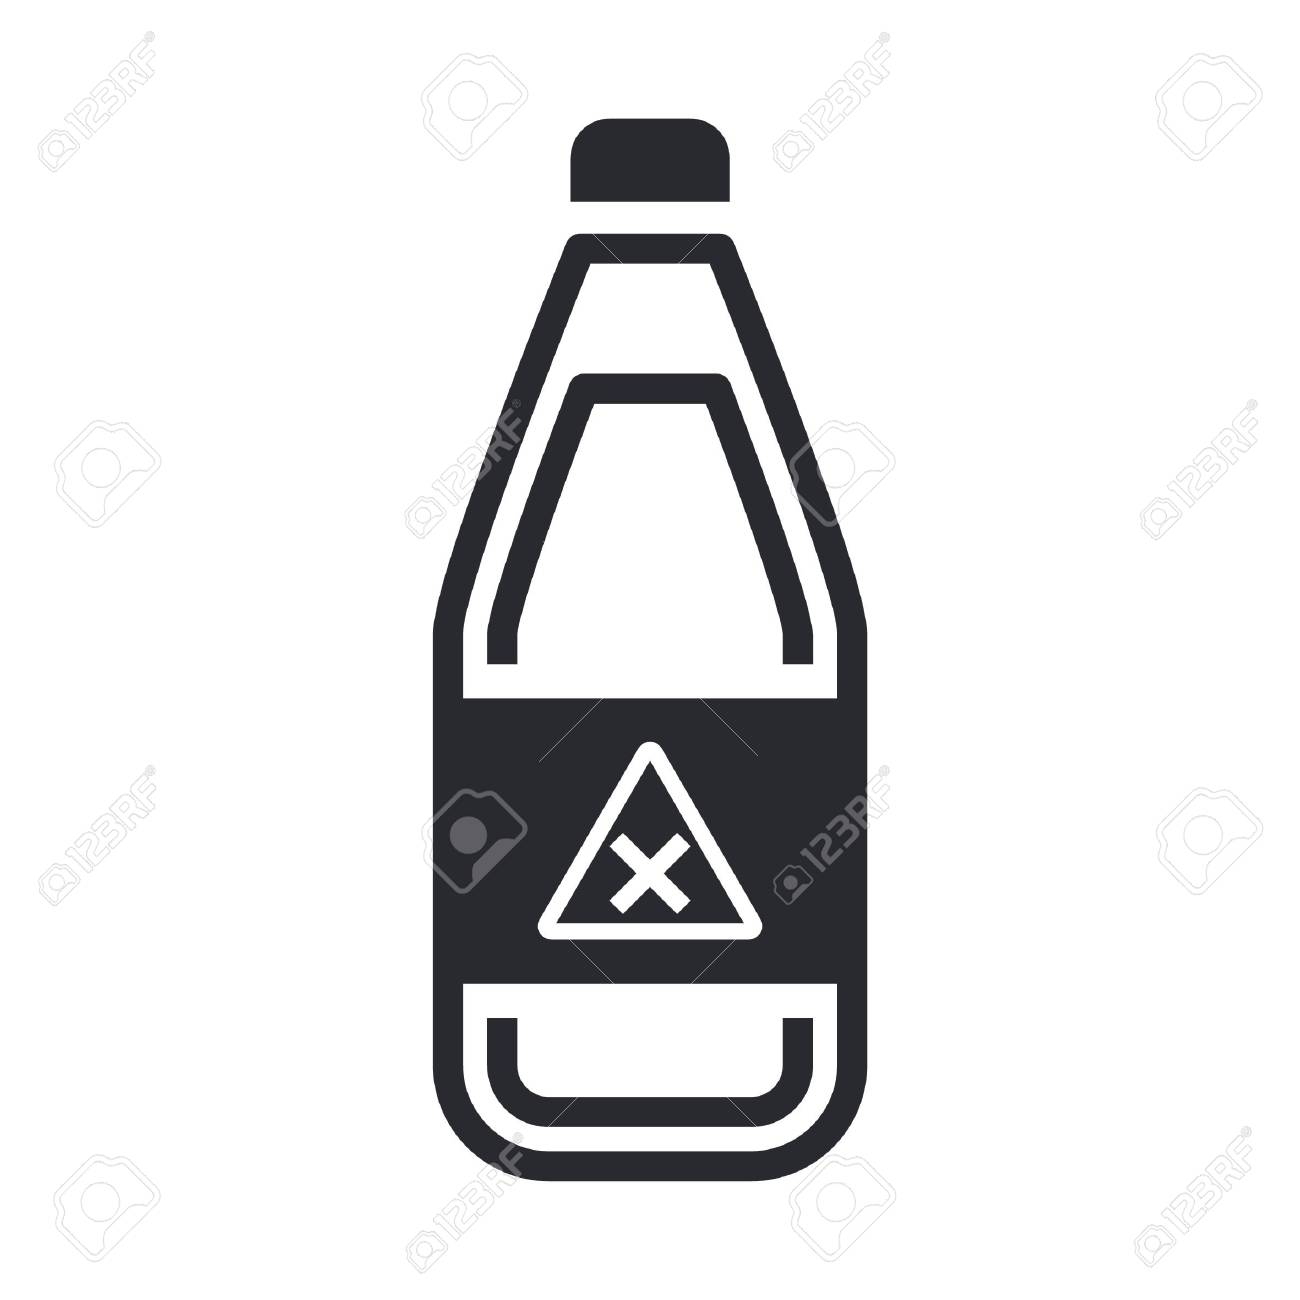 Vector illustration of single isolated dangerous bottle icon Stock Vector - 12119822